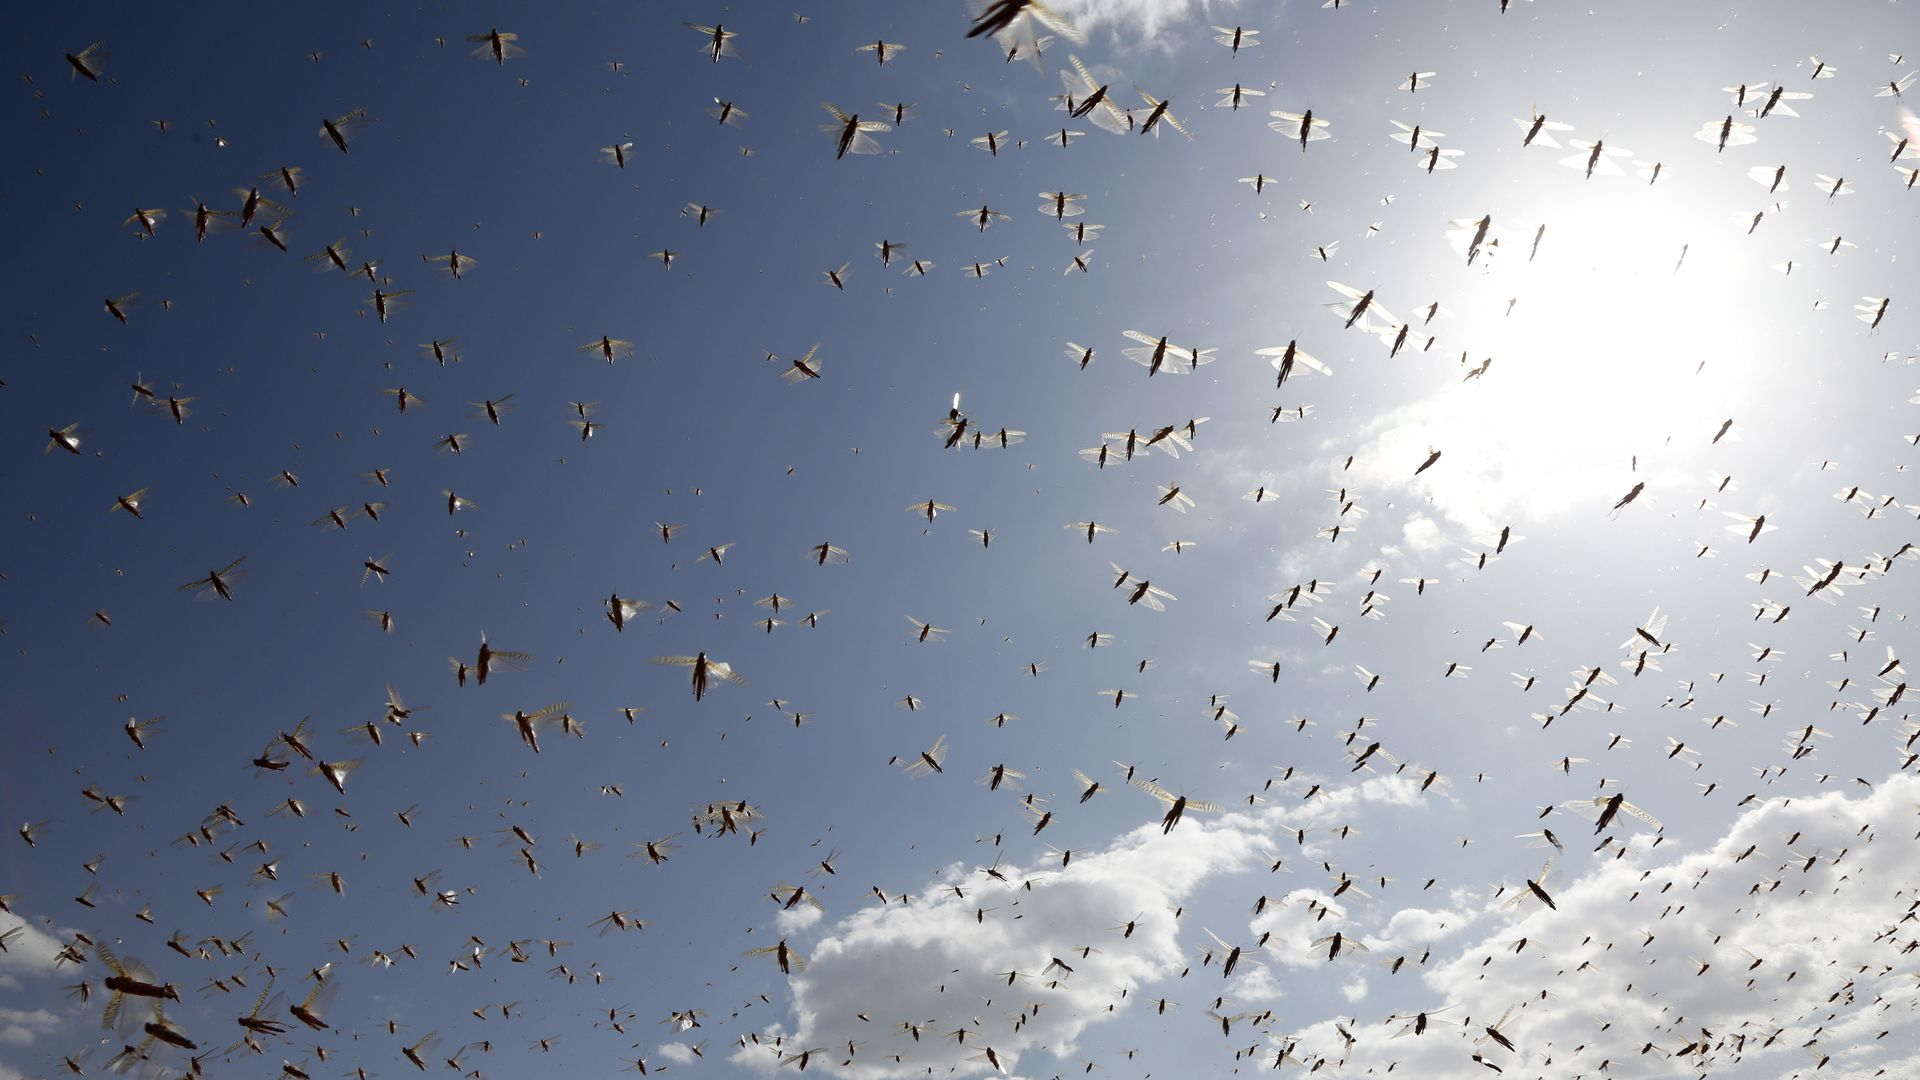 Researchers find scent behind some devastating locust swarms | Axios